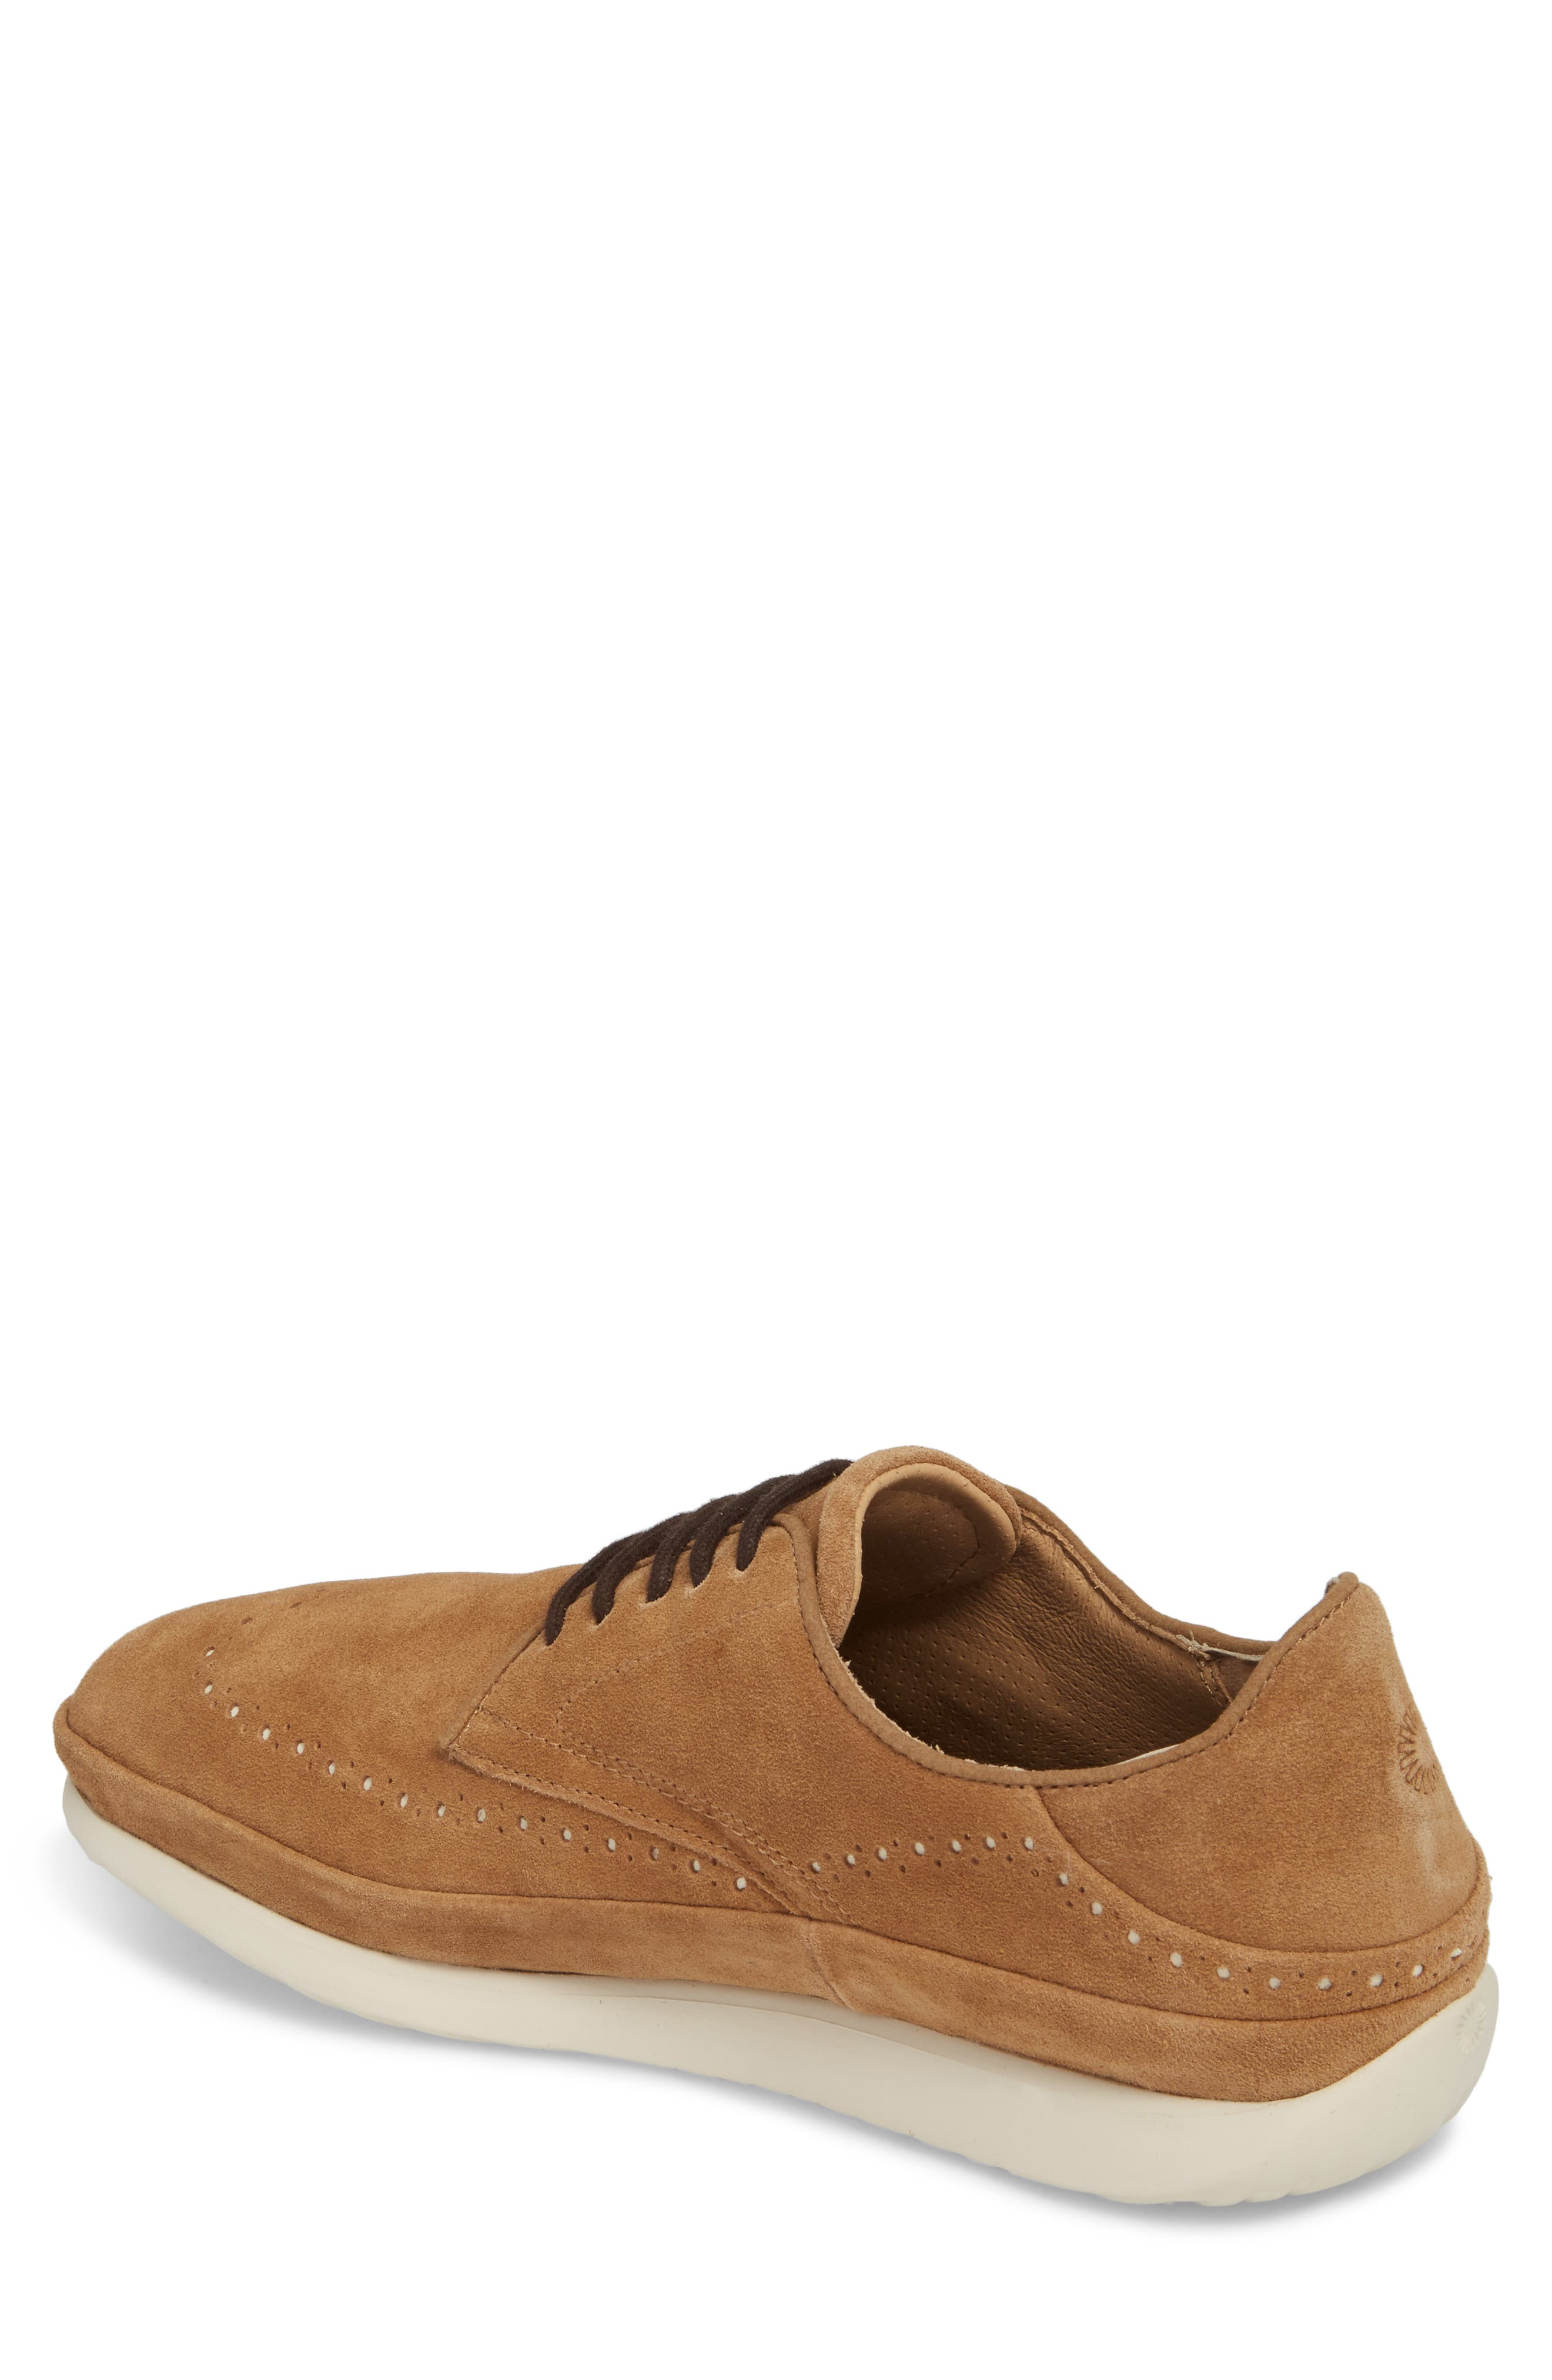 Cali Collapsible Wingtip Derby,                             Alternate thumbnail 2, color,                             CHESTNUT LEATHER